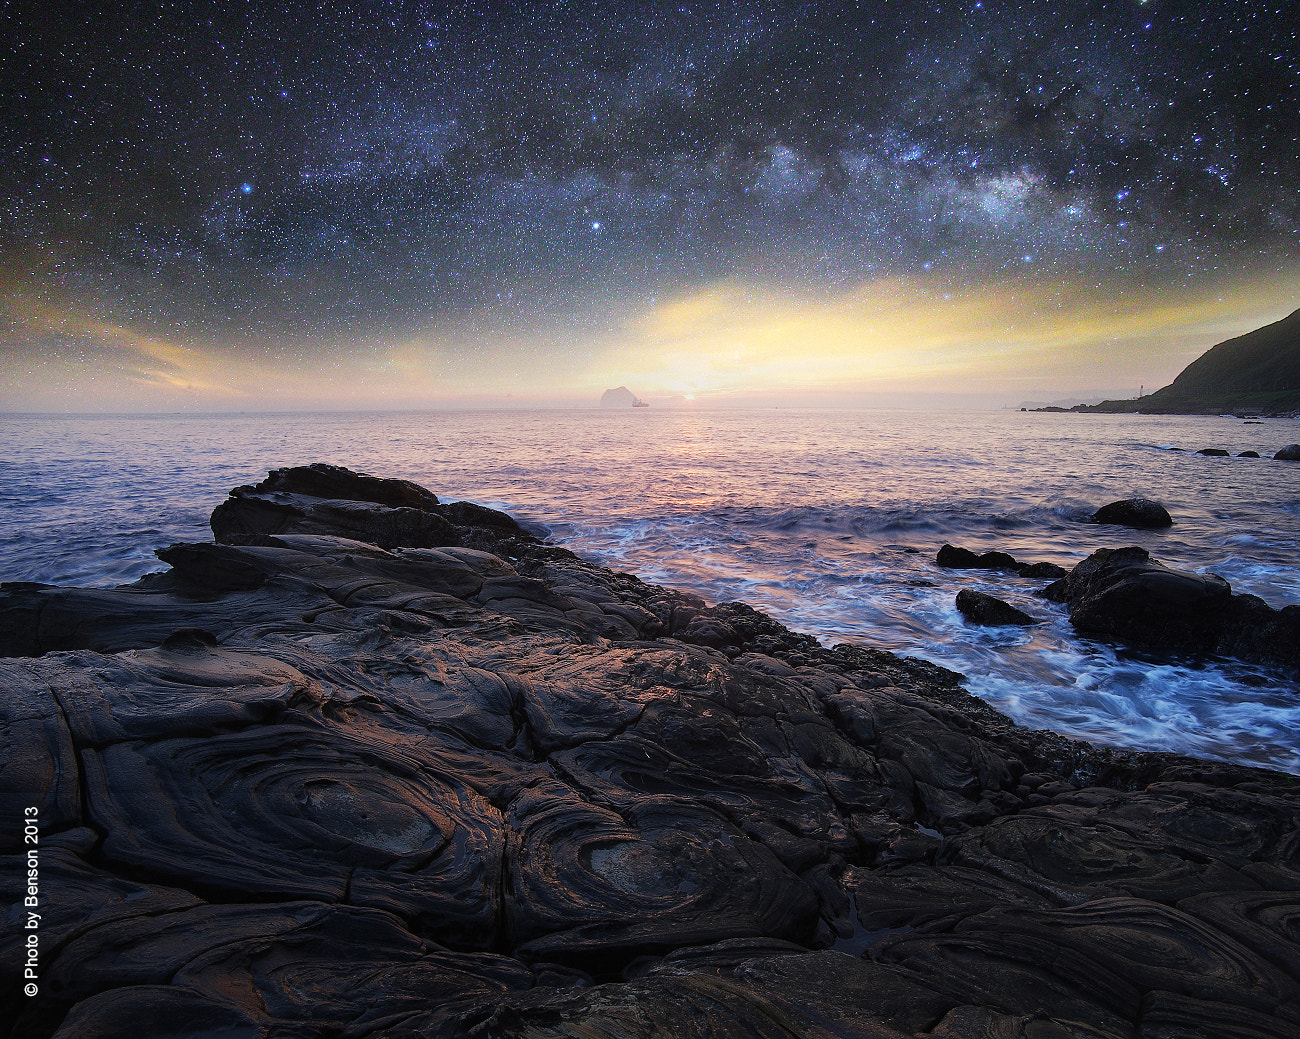 Photograph Fantasy by benson lin on 500px